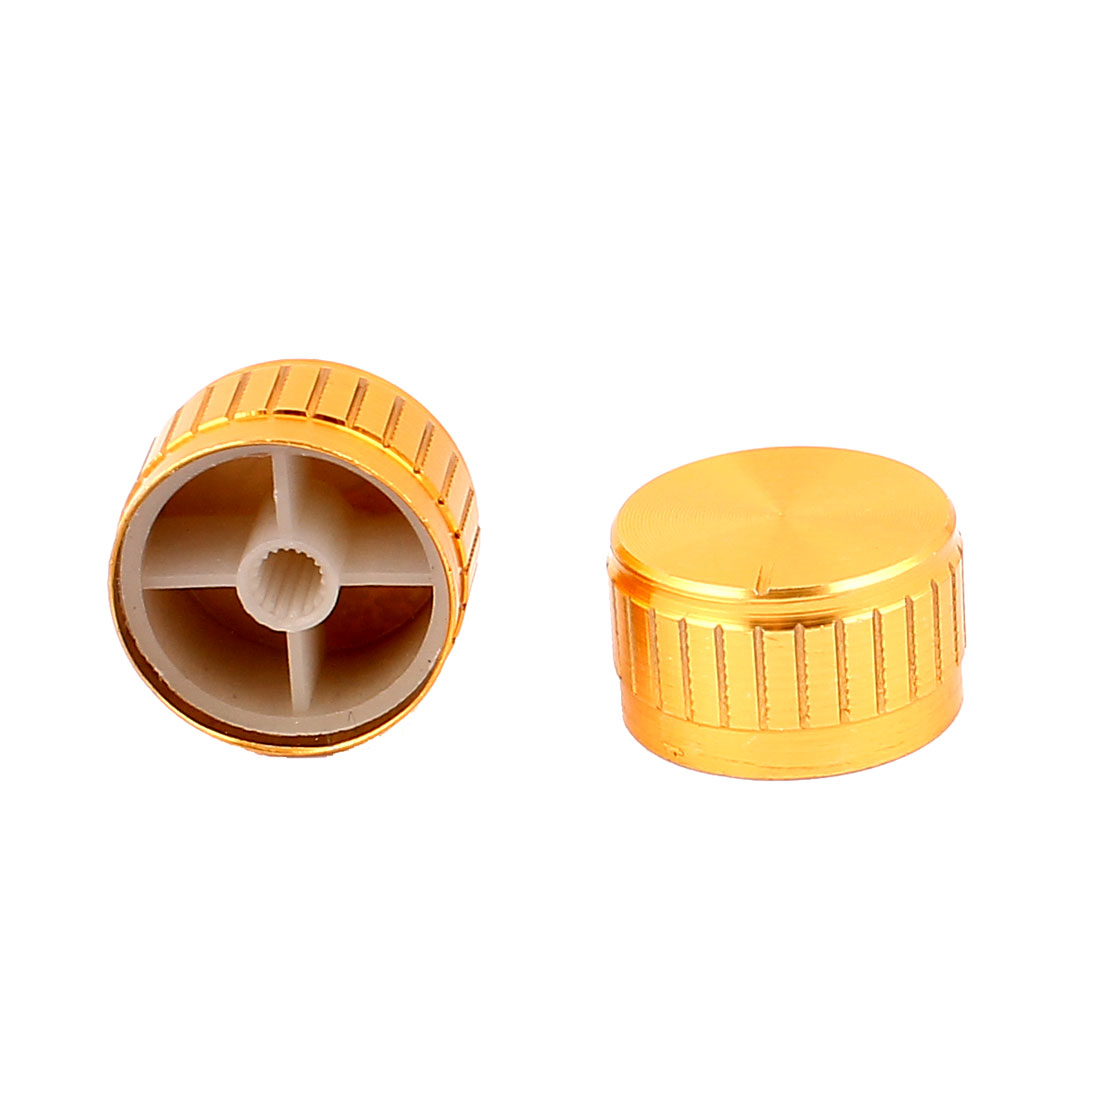 2 Pcs 30mm x 6mm Aluminium Alloy Potentiometer Control Switch Volume Cap Knurled Button Gold Tone